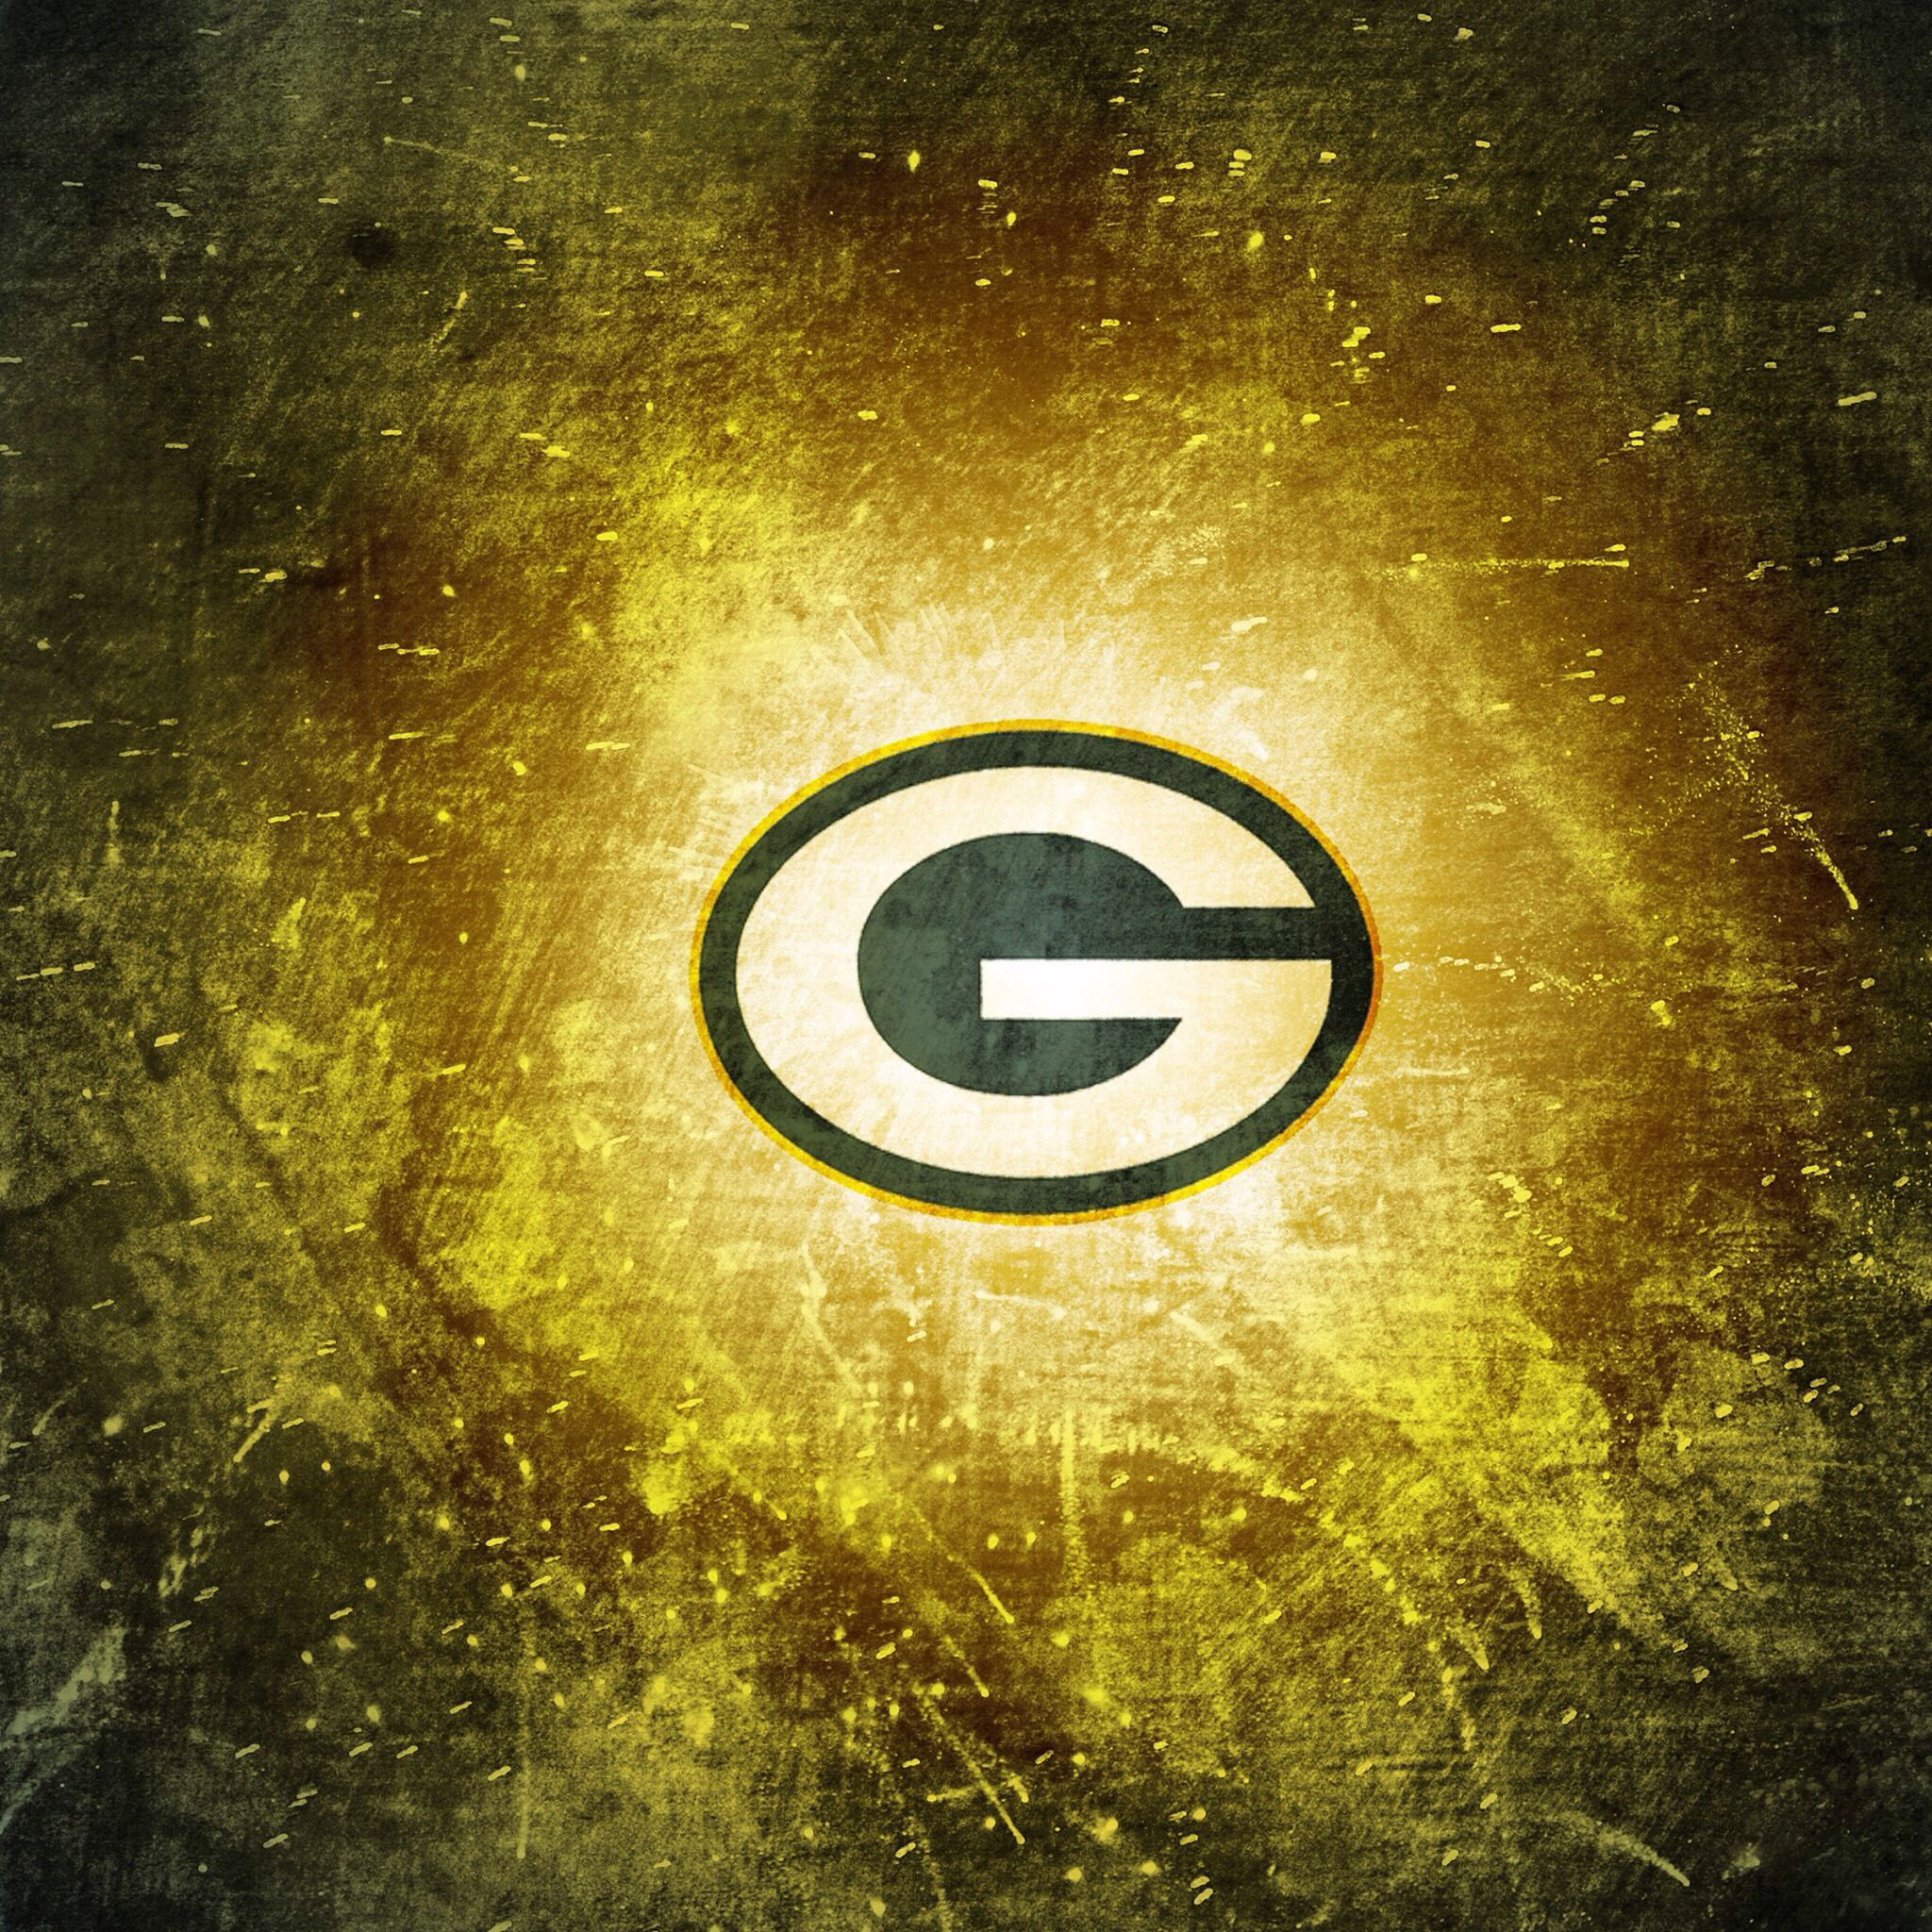 Greenbay Packers Green Bay Packers Wallpaper Green Bay Packers Green Bay Packers Logo